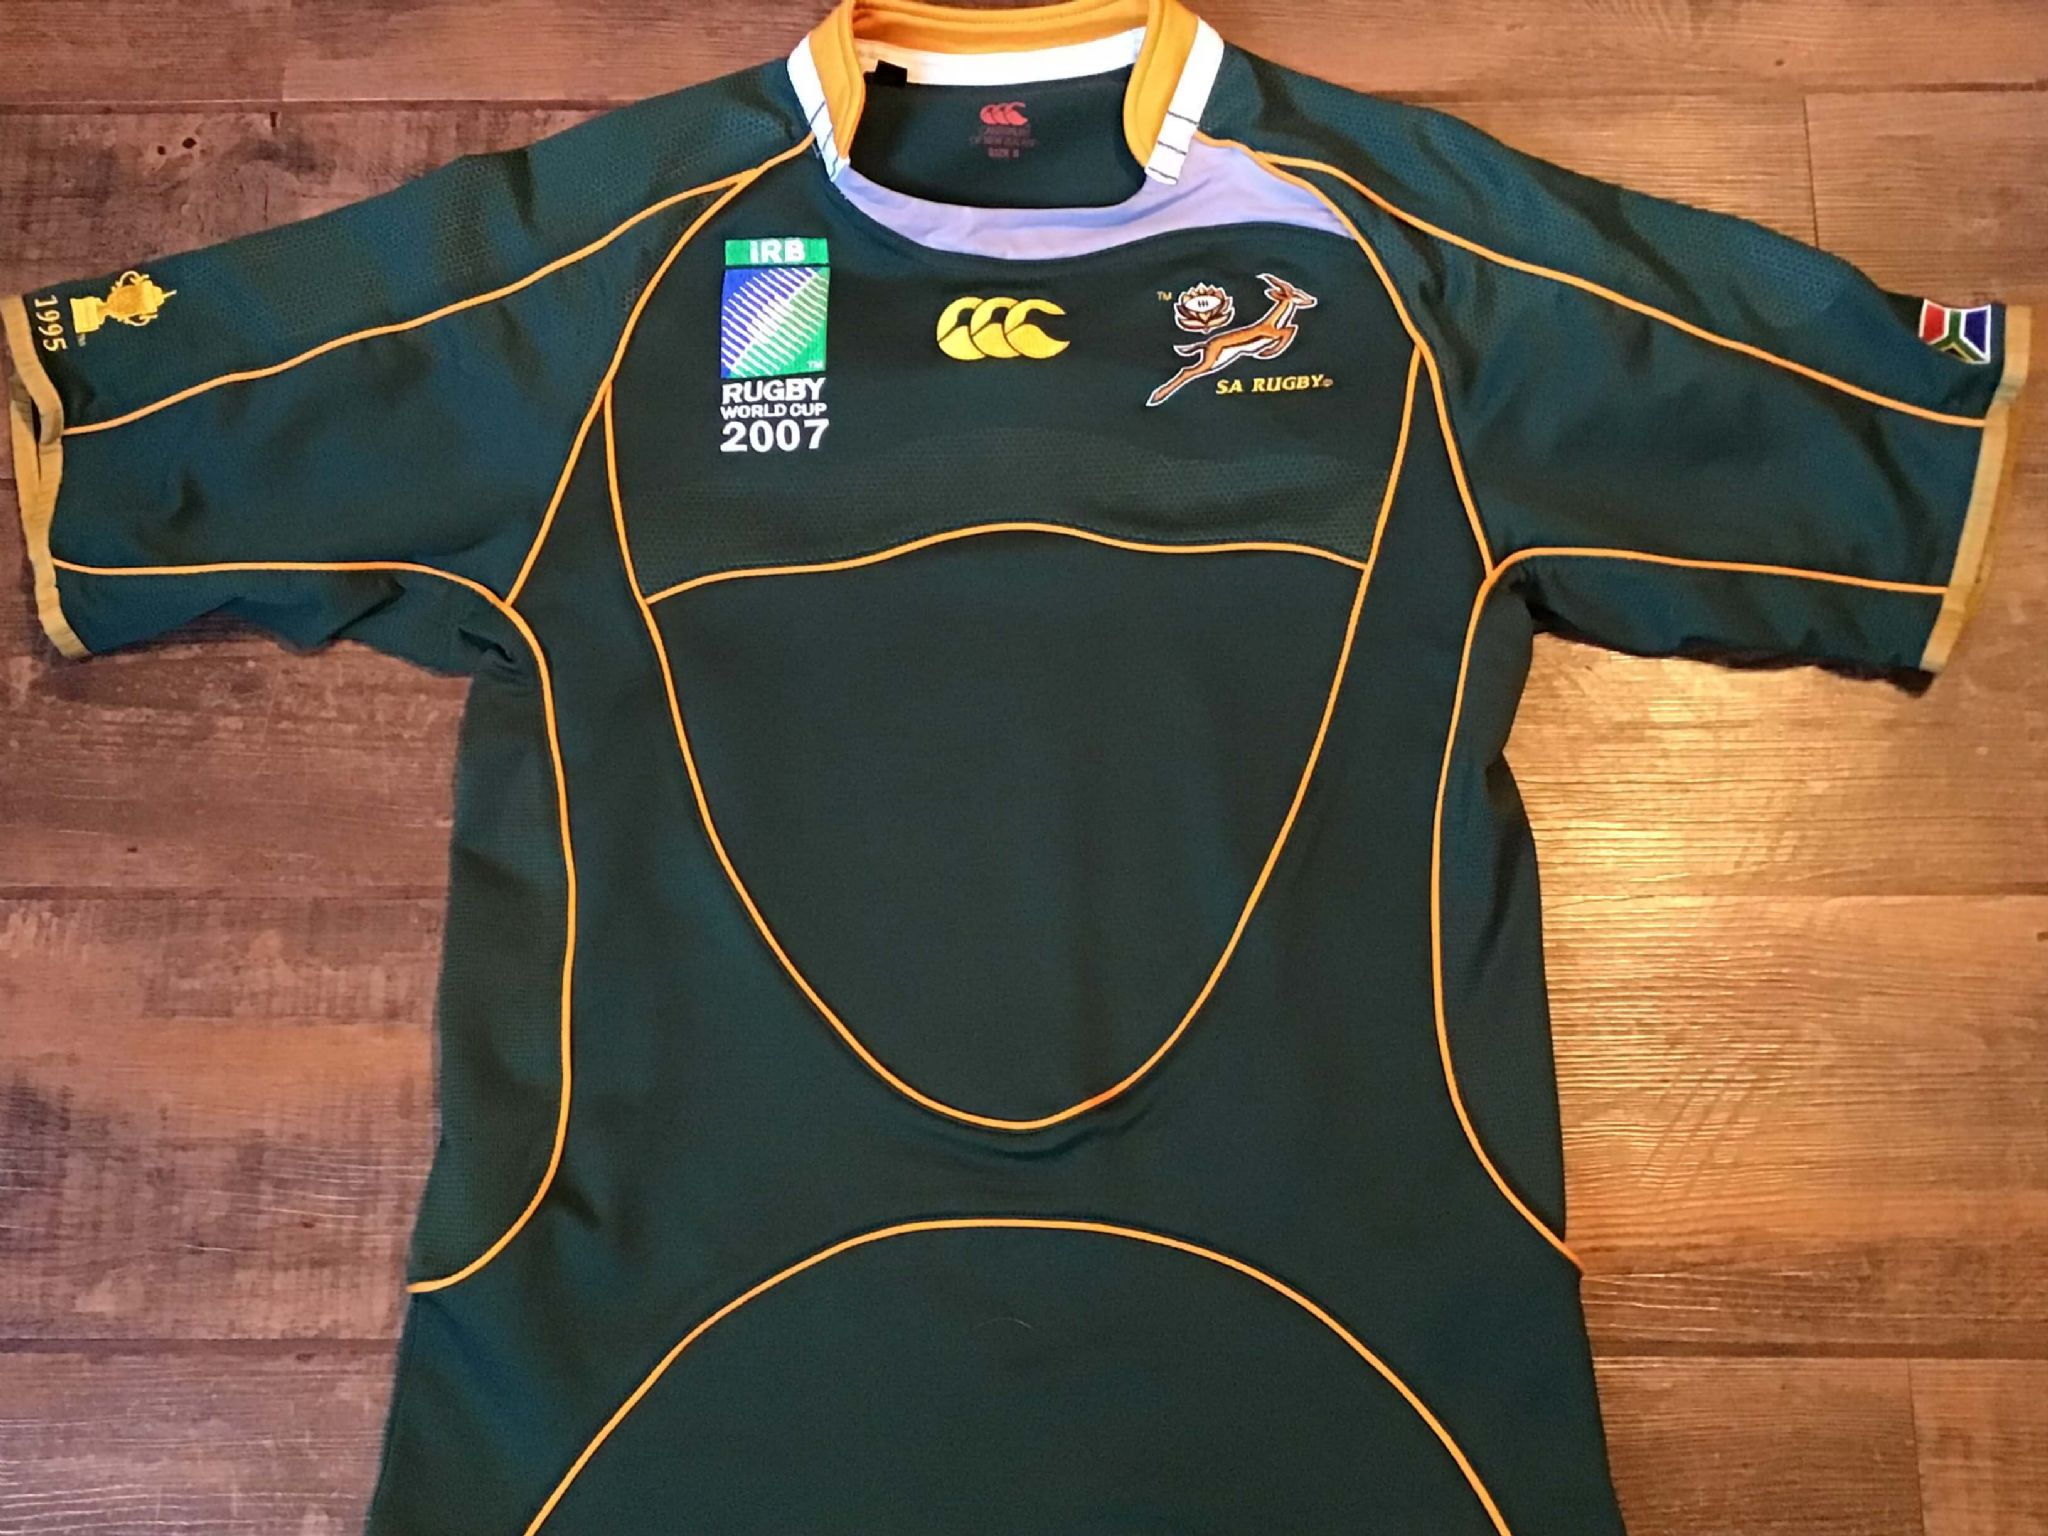 huge discount f61bd a735c Classic Rugby Shirts   2007 Springboks Vintage Old Retro Jerseys